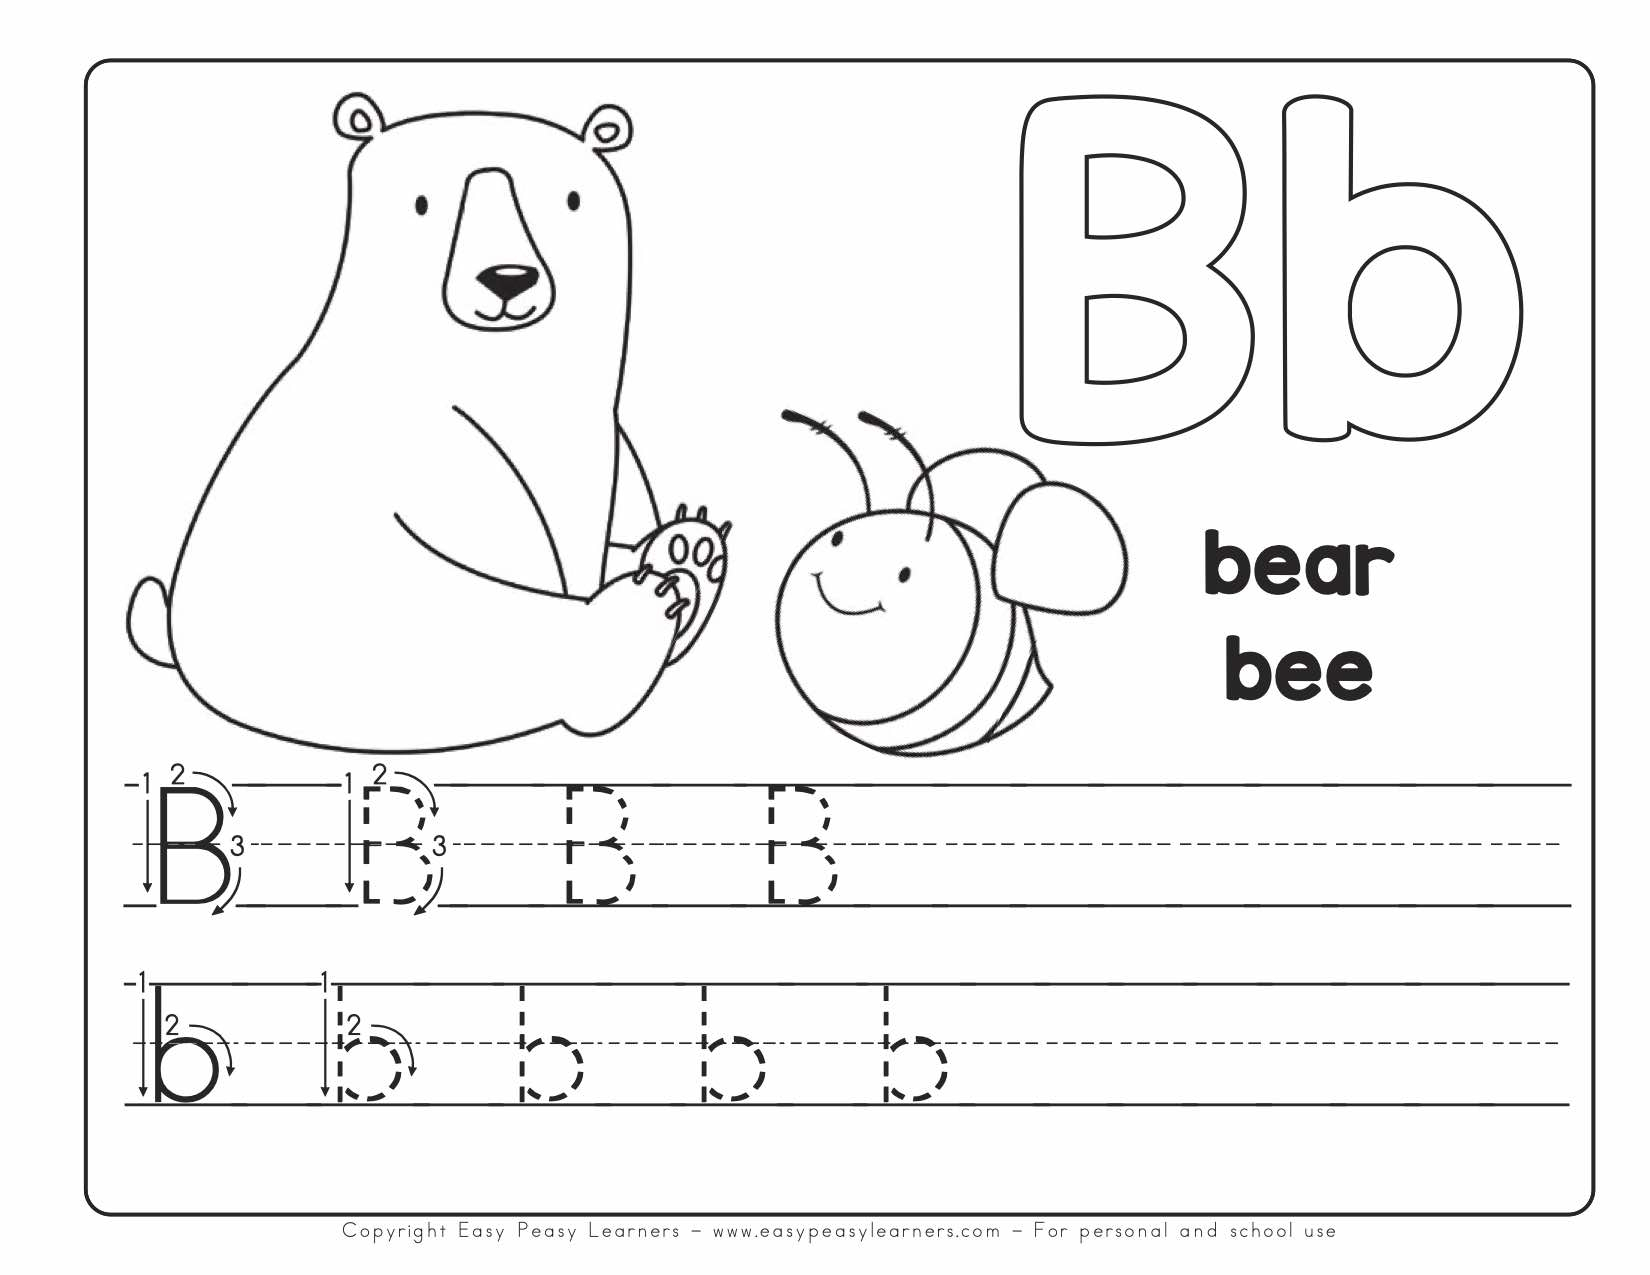 My Printable Alphabet Book Letter Reading Worksheets Awesome with regard to Alphabet Book Worksheets